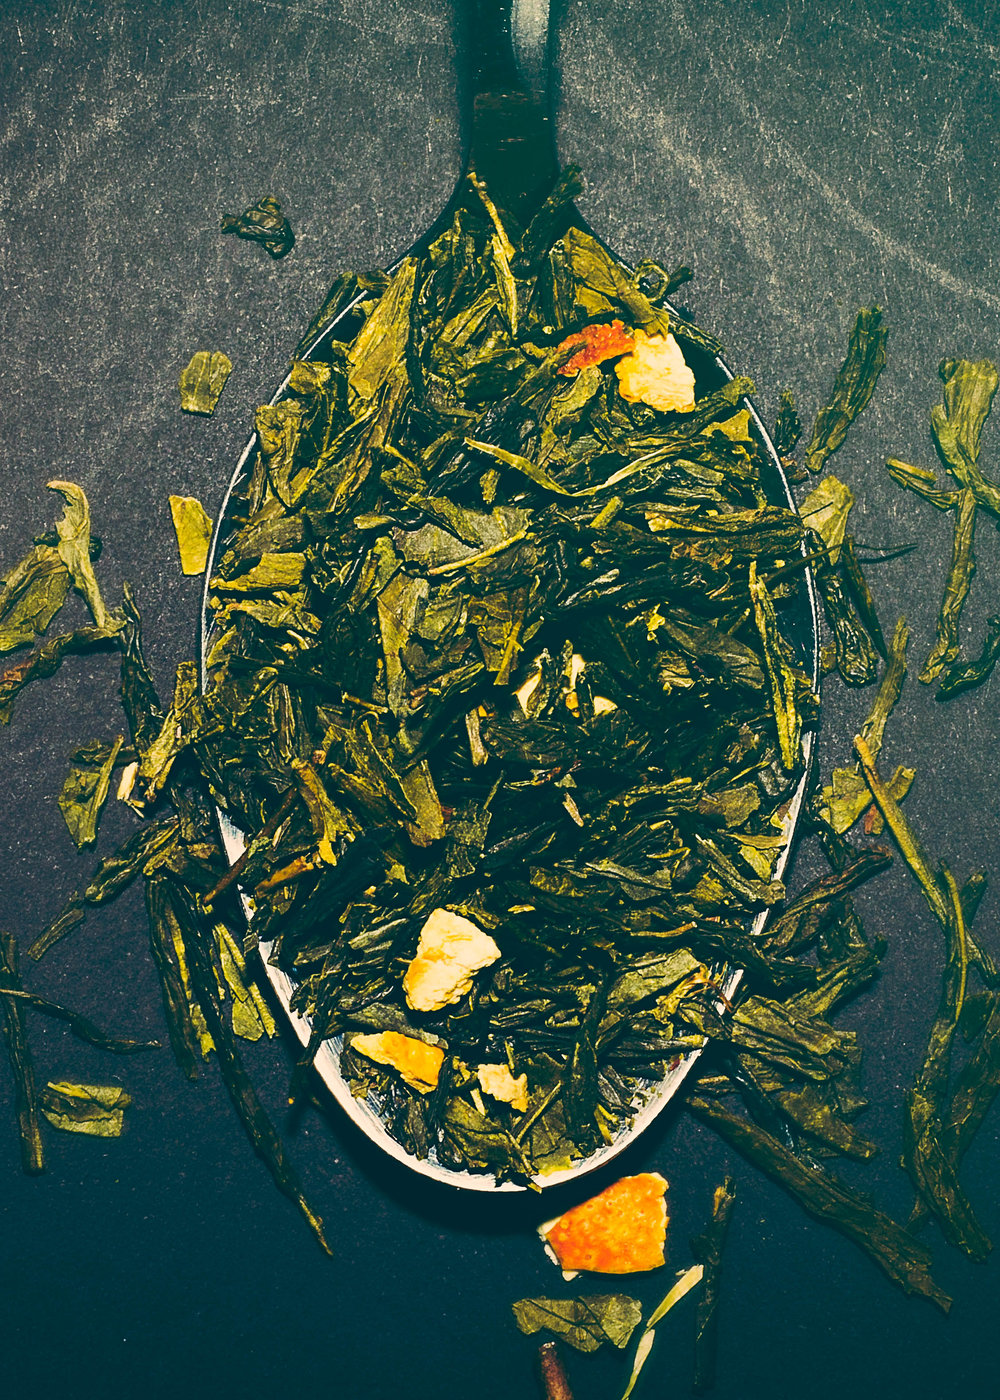 spoon-tea-green-tea-tea-leafs.jpg